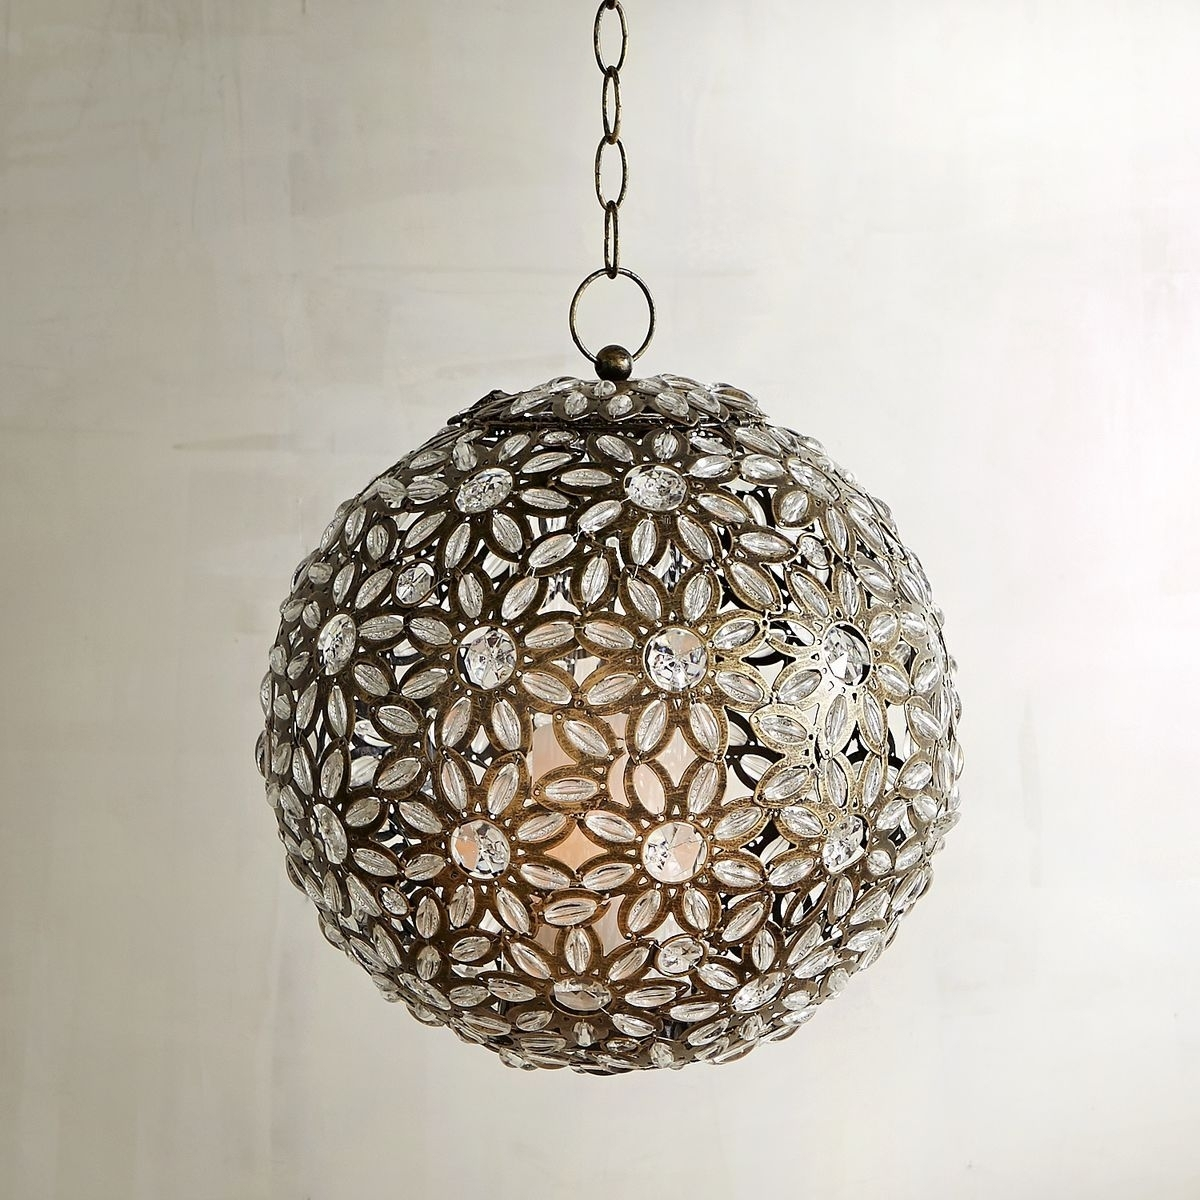 Caravan Clear Gem Round Hanging Lantern | Pier 1 Imports | Boho Bath Pertaining To Round Outdoor Hanging Lights (View 9 of 15)